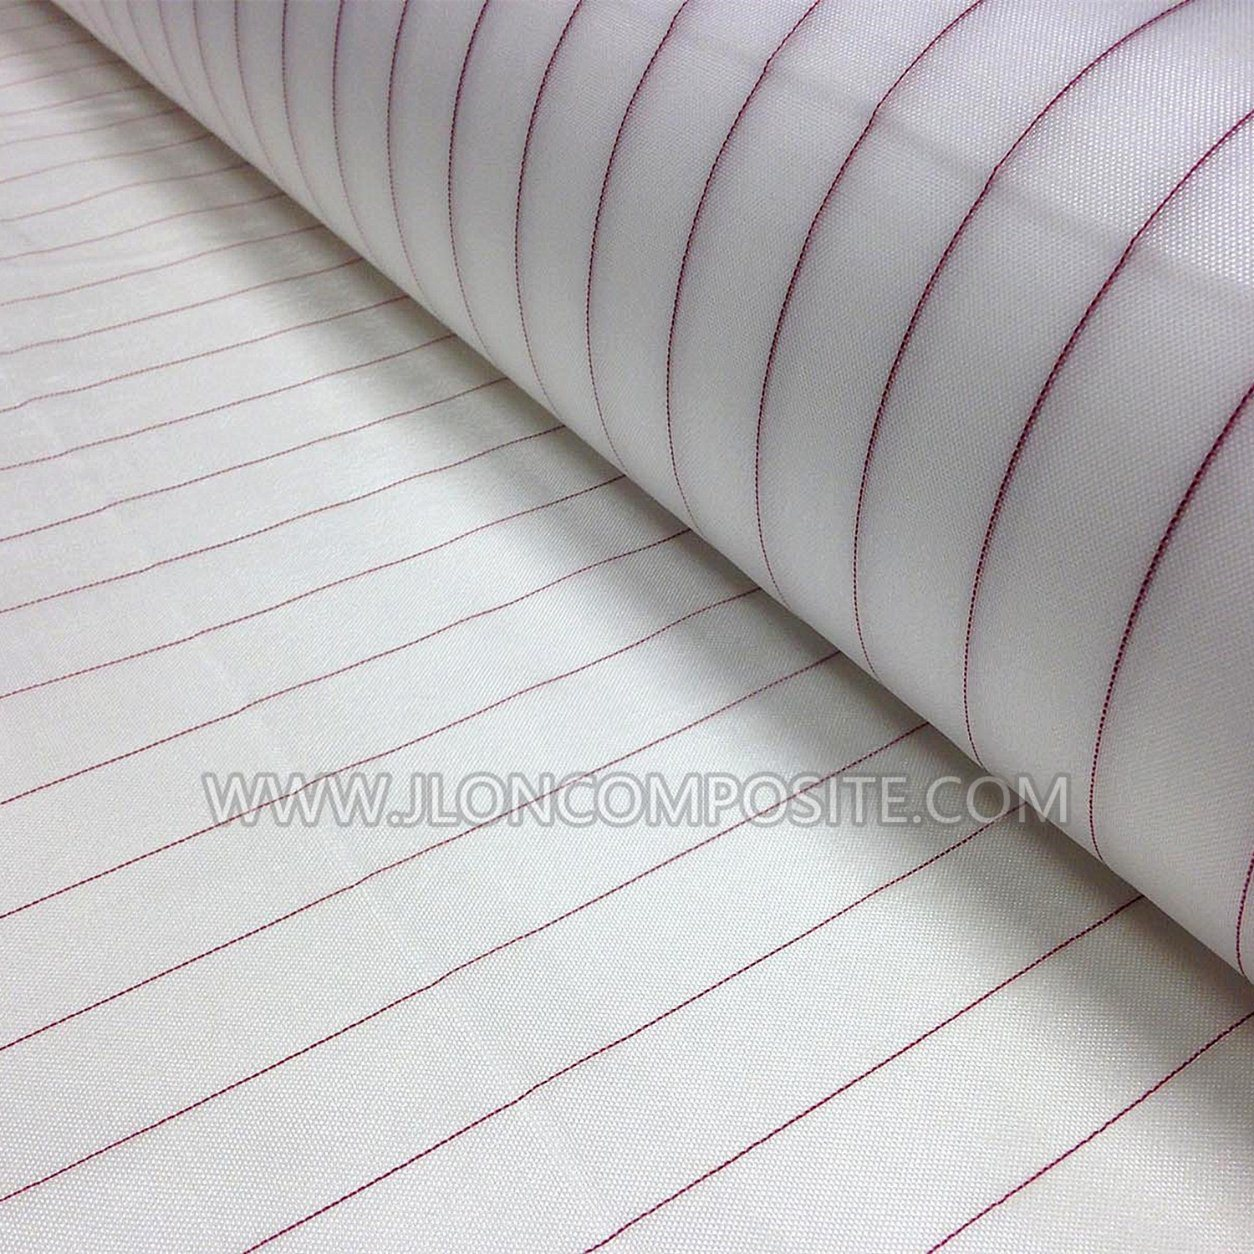 [Hot Item] PA66 Release Fabric Peel Ply for Vacuum Bagging Infusion